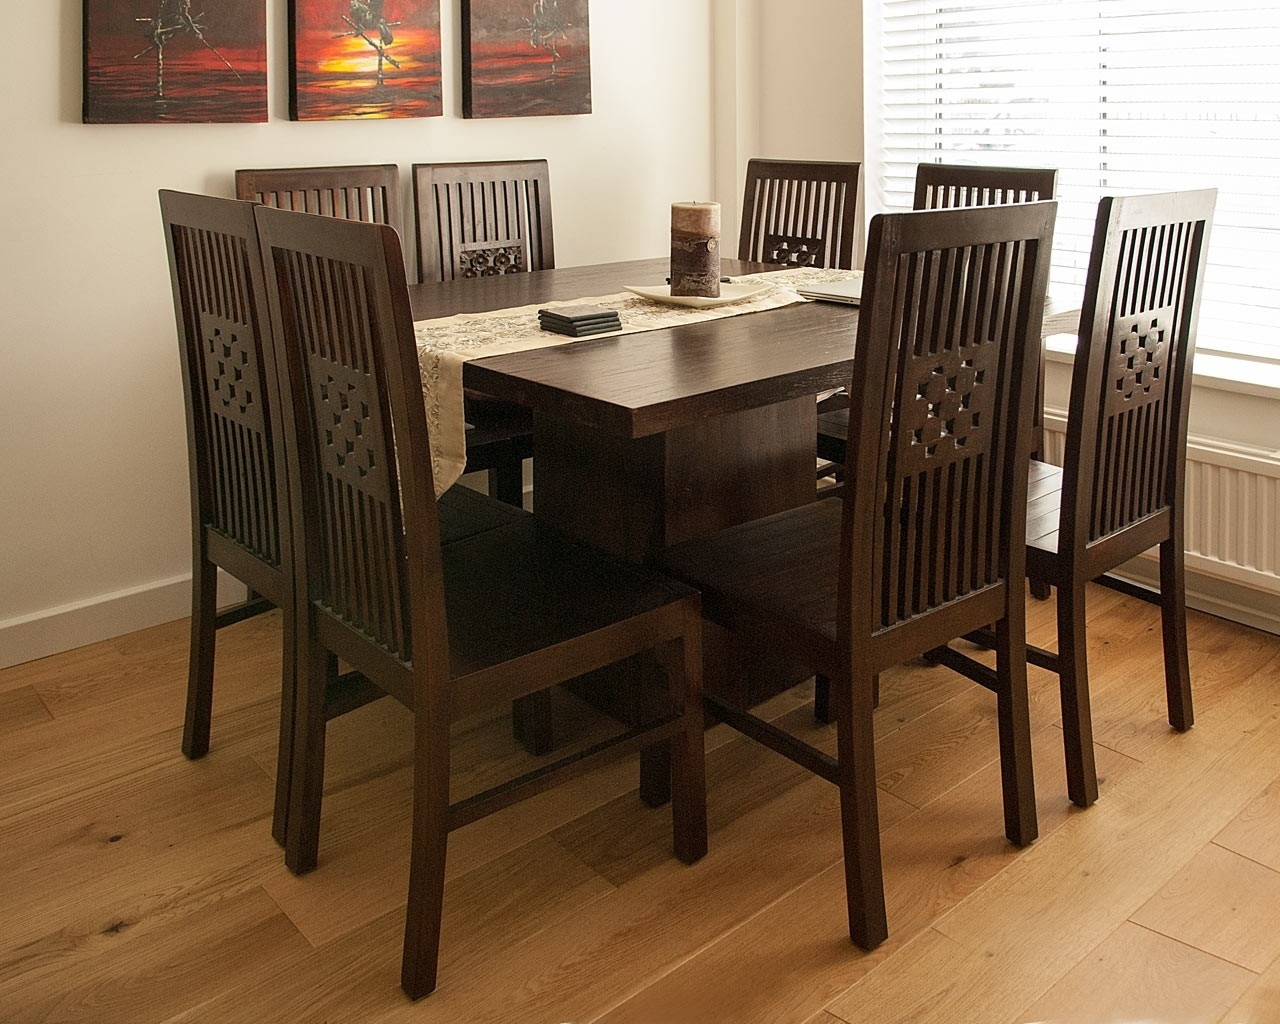 The Making Of The Dark Wood Dining Table – Home Decor Ideas Intended For Preferred Dark Wooden Dining Tables (View 4 of 25)